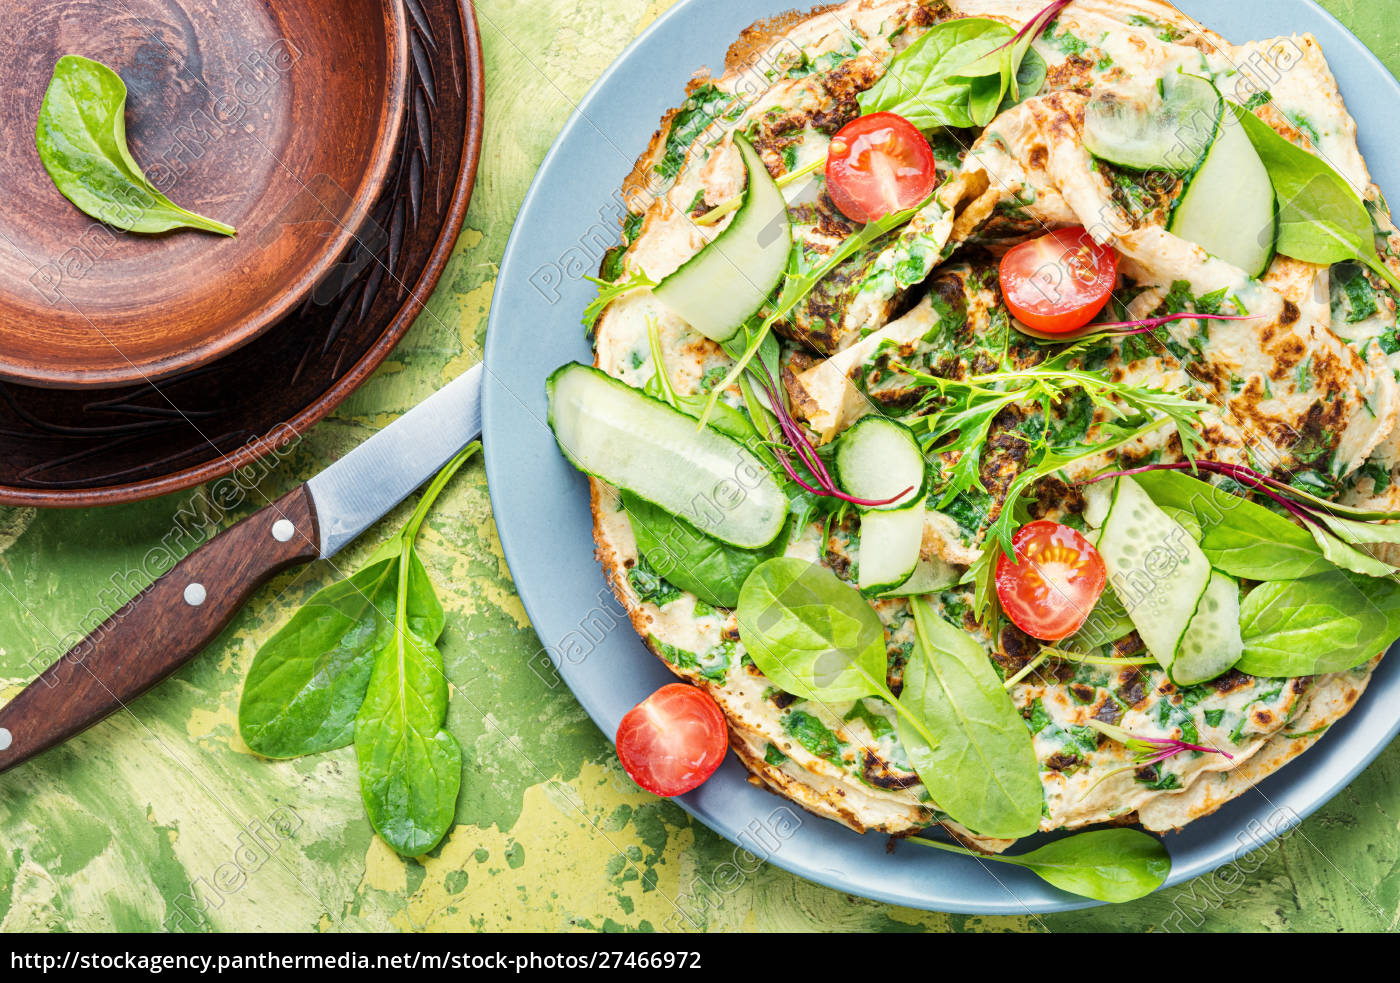 homemade, pancakes, with, herbs - 27466972